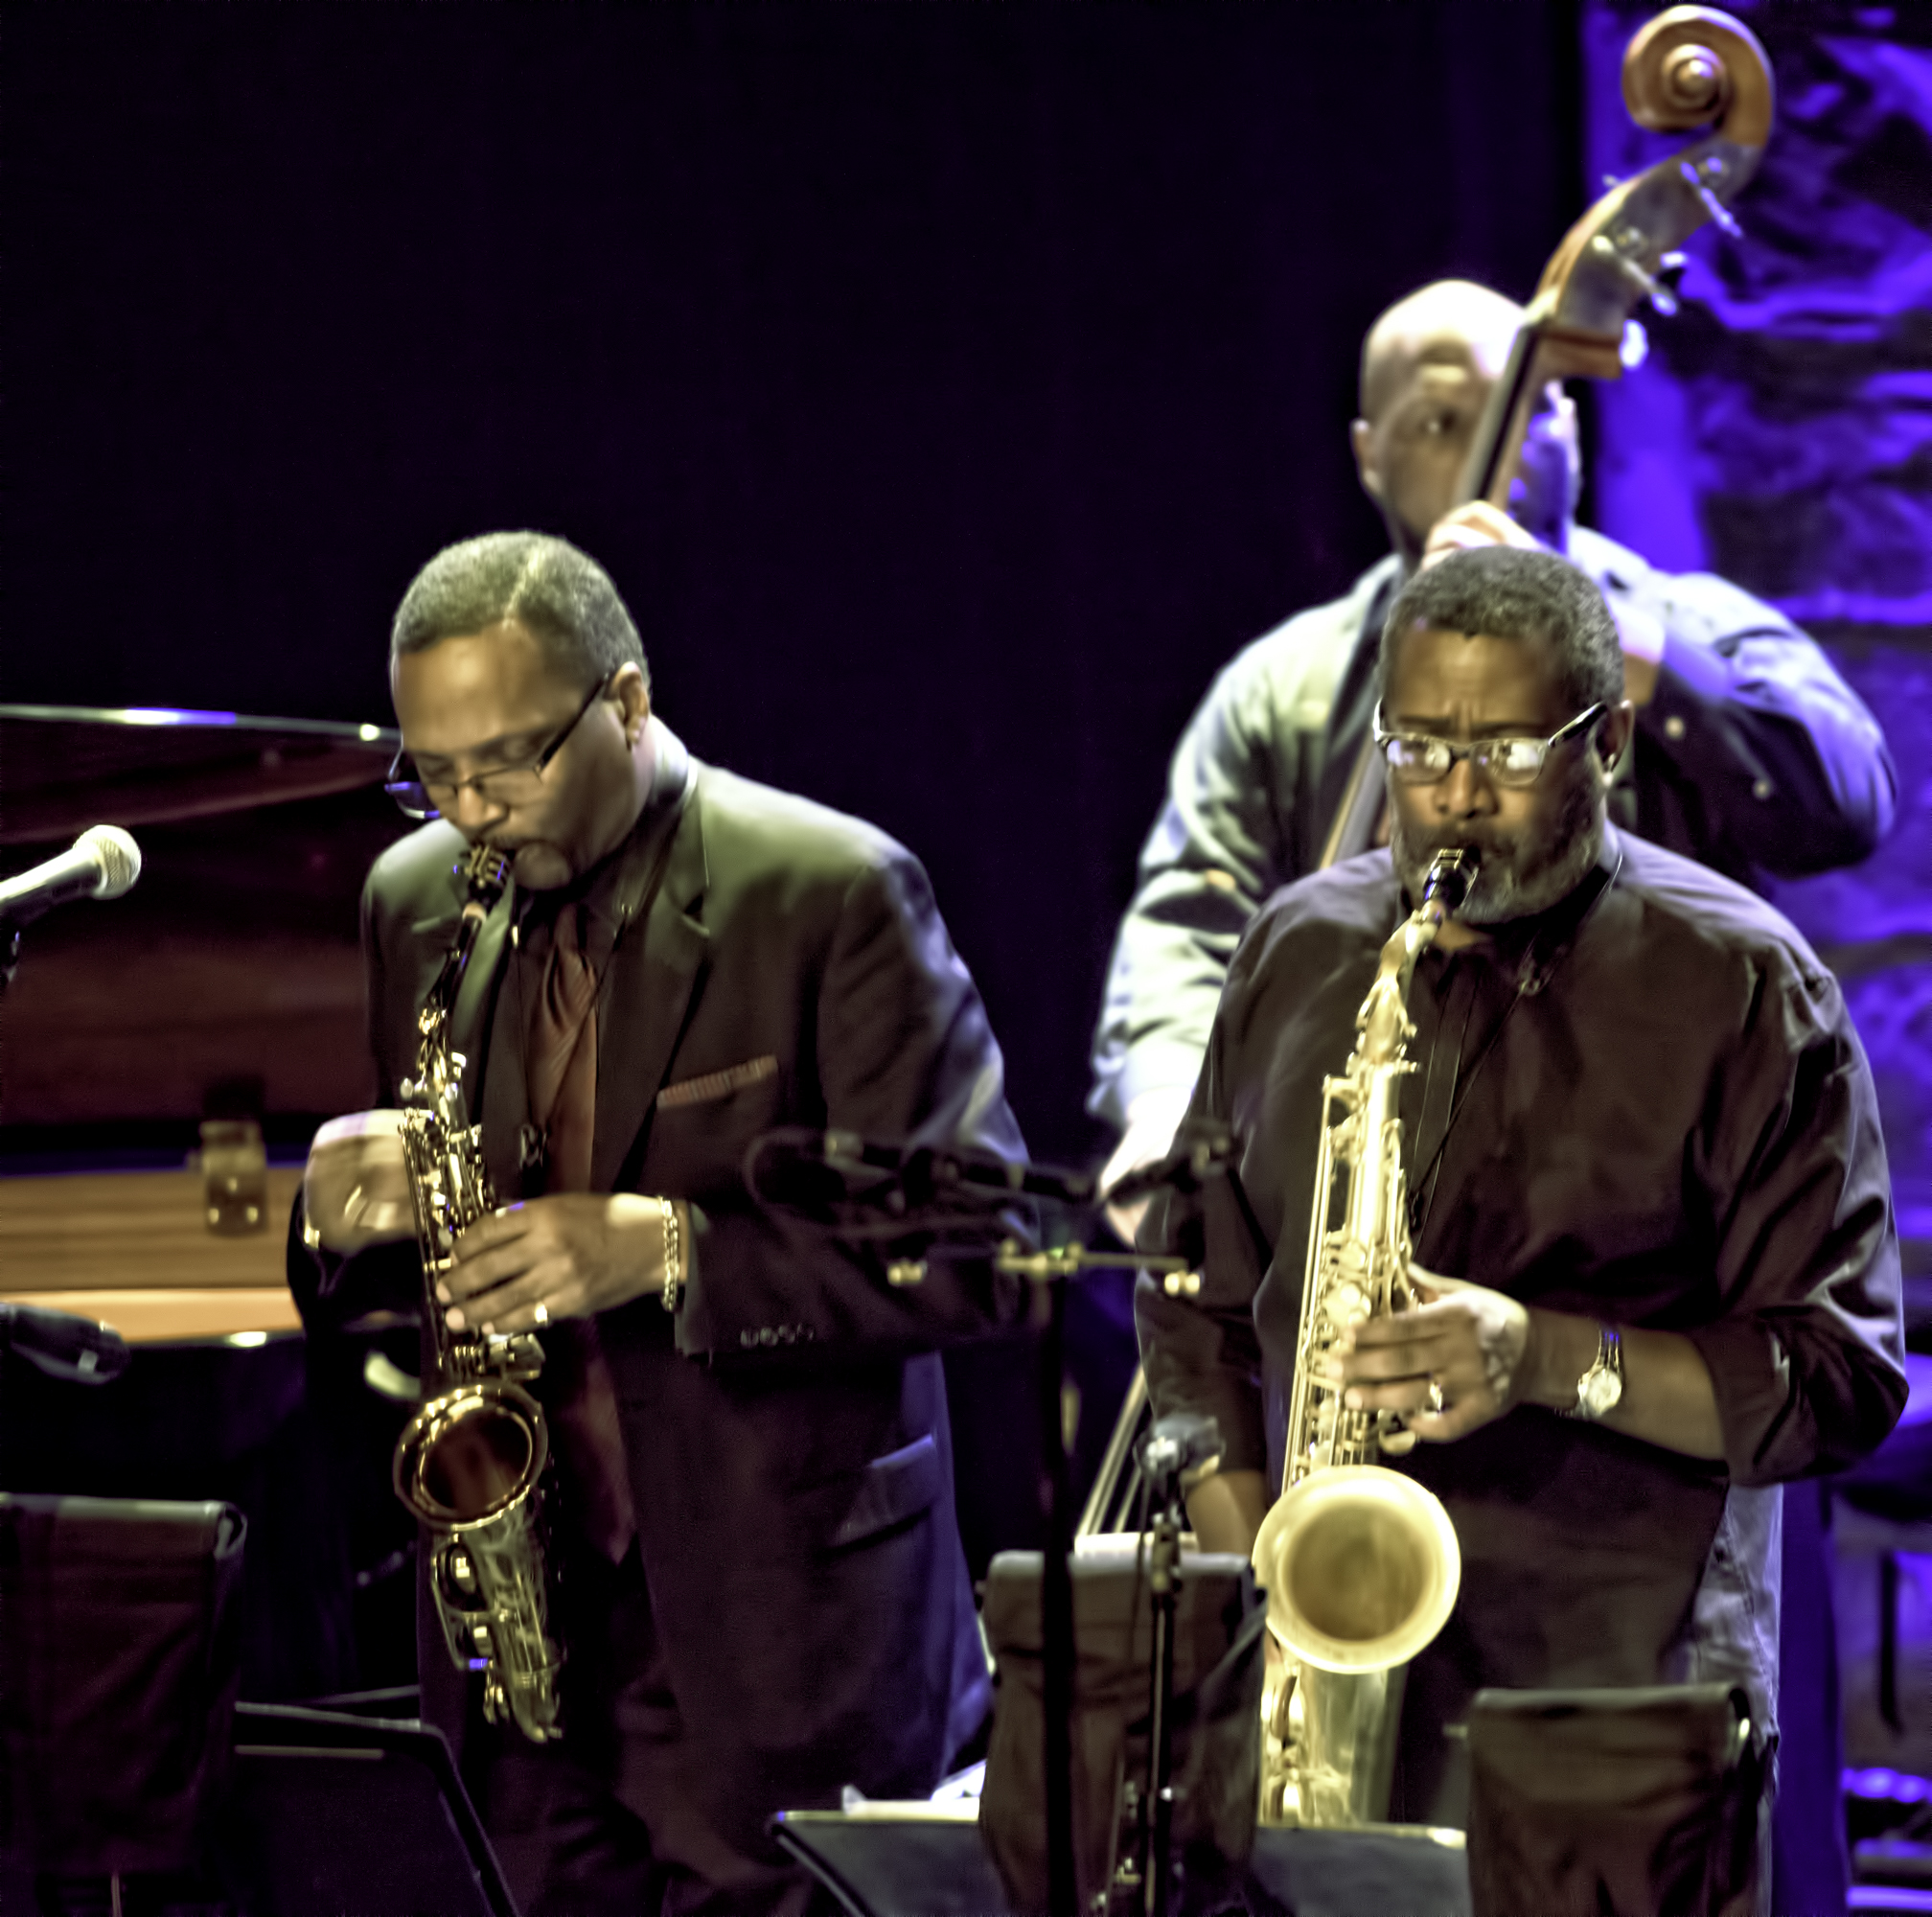 Cleave Guyton, Lance Bryant and Noah Jackson with Abdullah Ibrahim and Ekaya at the Montreal Jazz Festival 2015